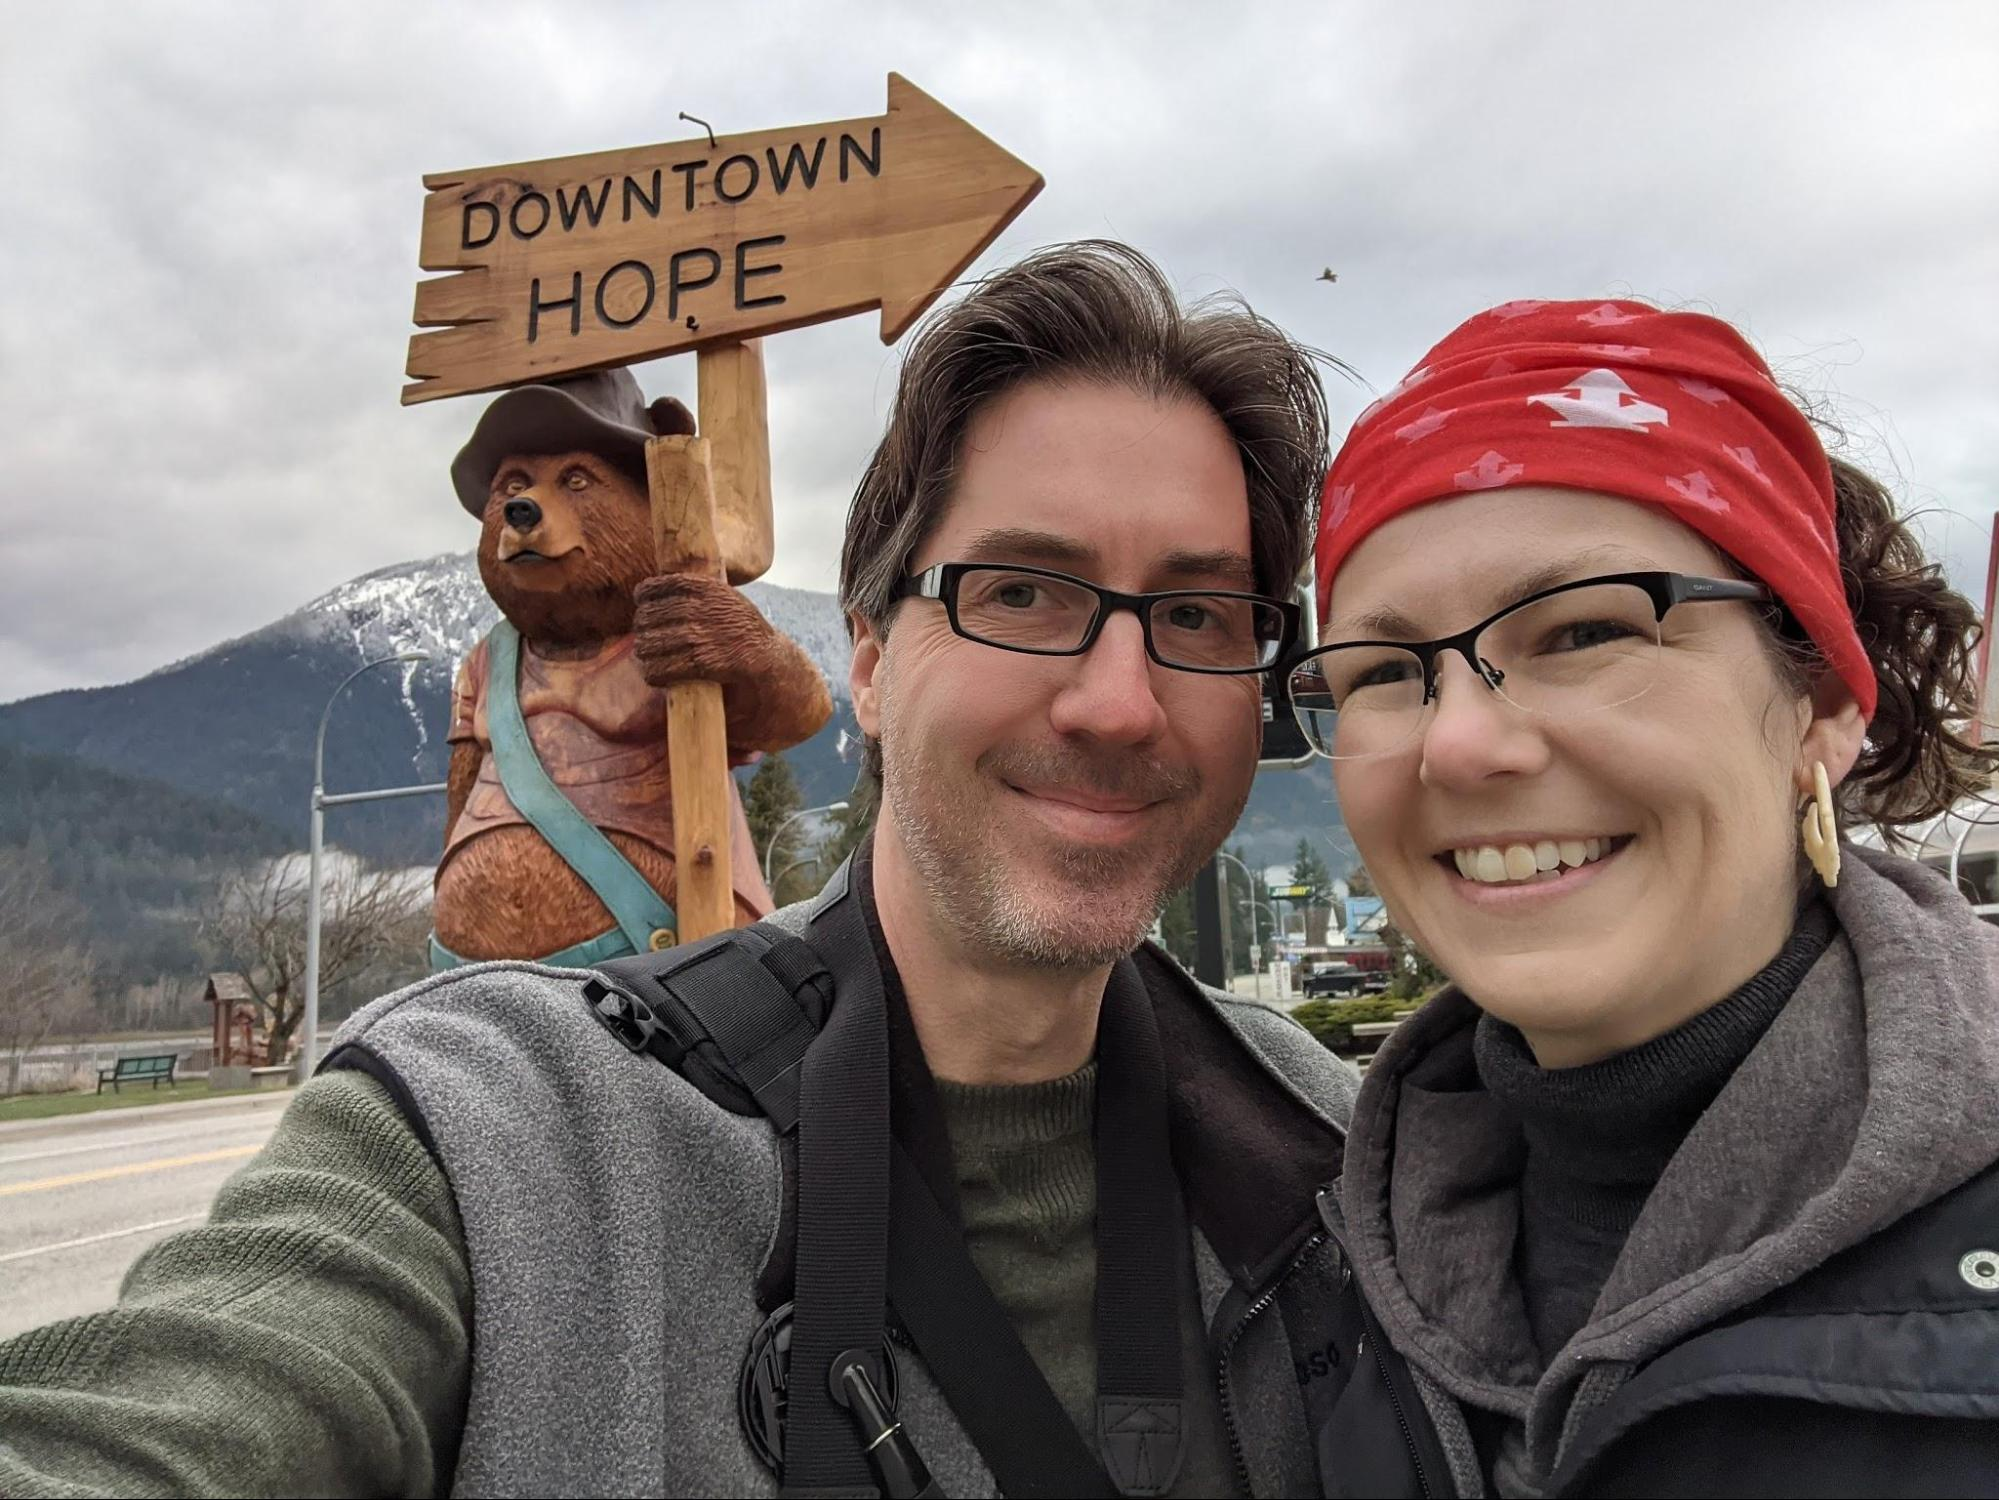 woman and man standing in front of a chainsaw carving of a bear wearing blue overalls, a brown hat, and holding a directional sign pointing to downtown Hope.